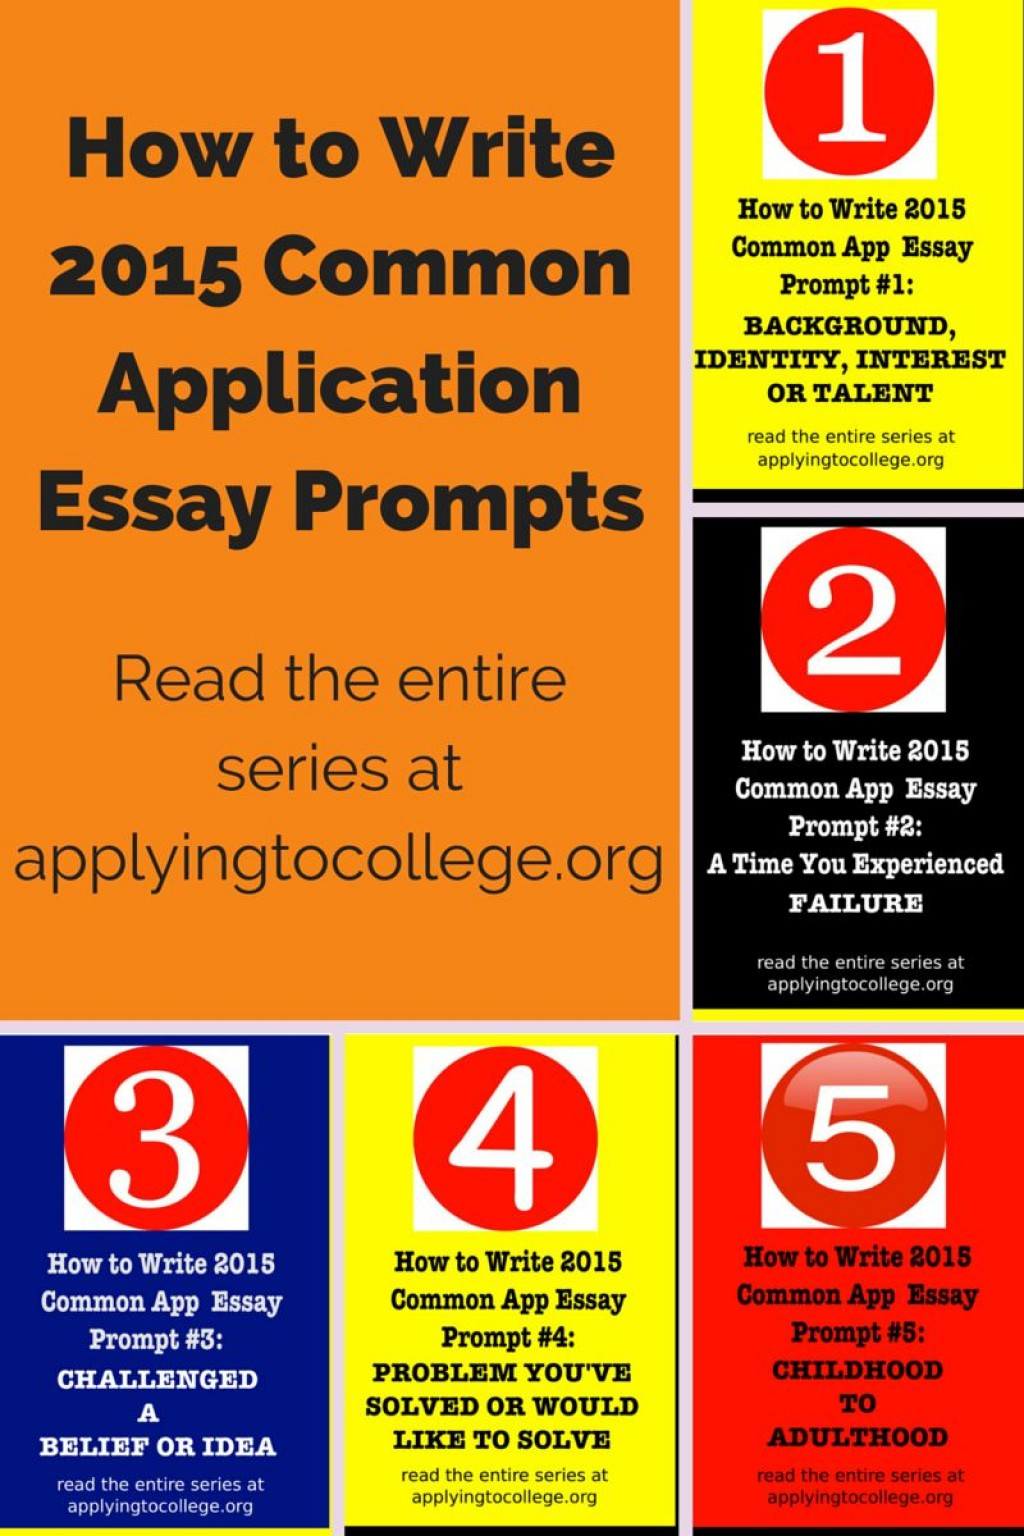 023 College Essay Topics Common App Example Shocking Ideas Most Application Prompts 2018 Large